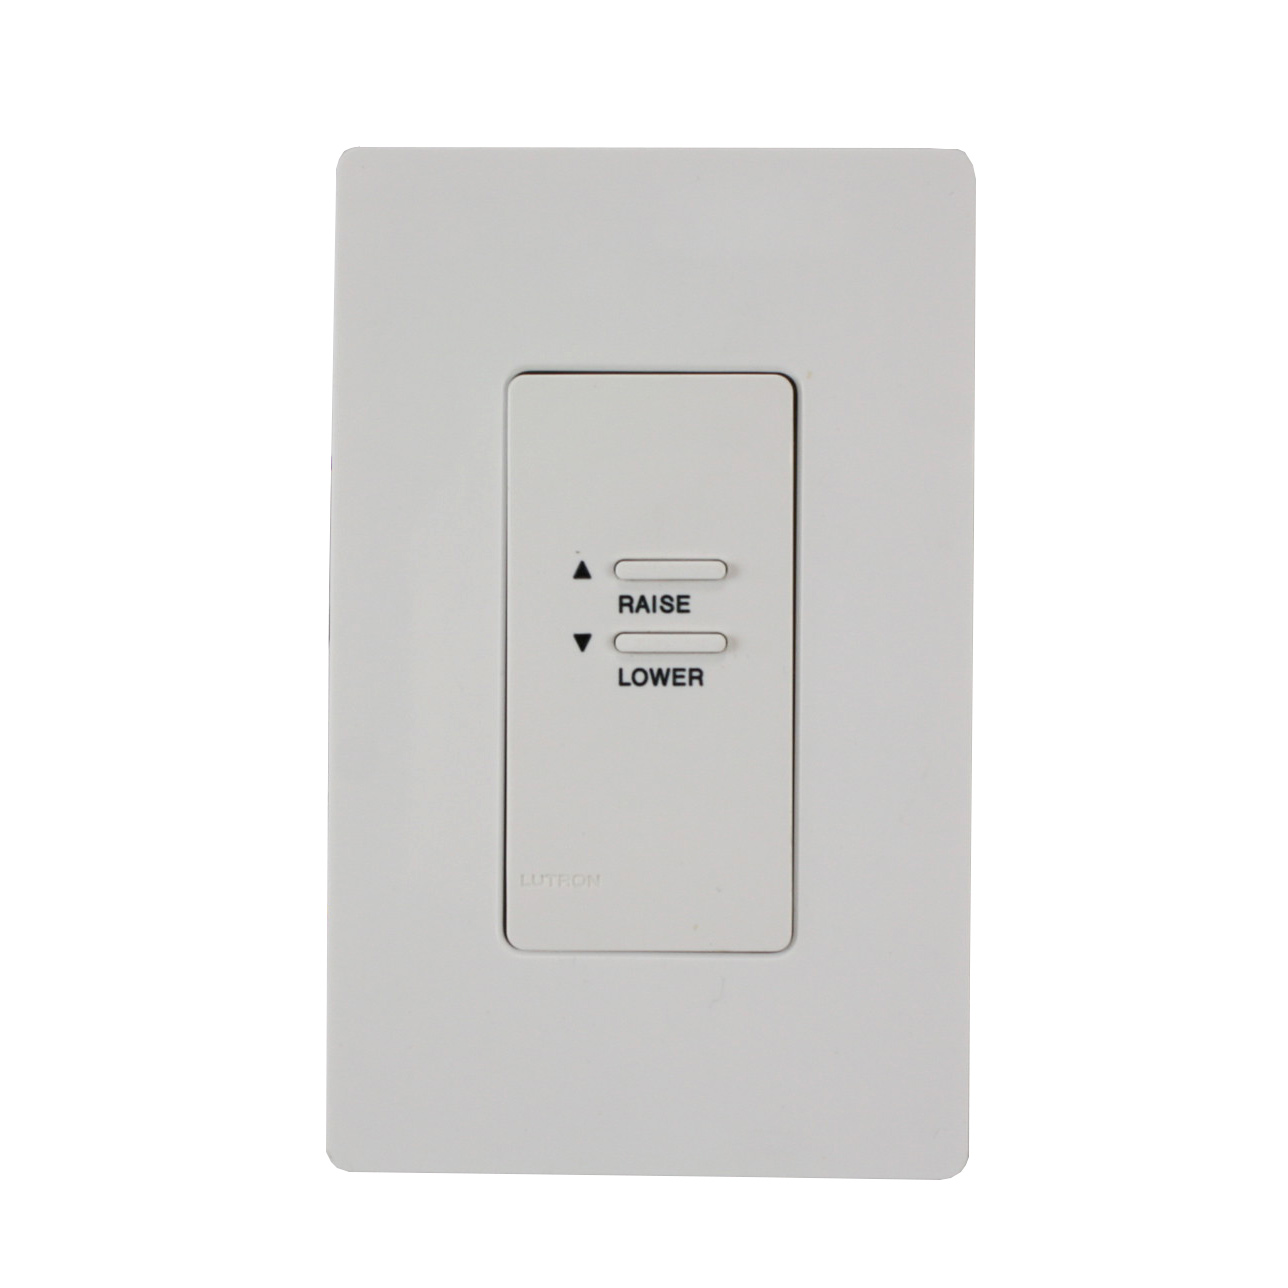 Low Voltage Keypad : Lutron wck b cc white window covering keypad for shade